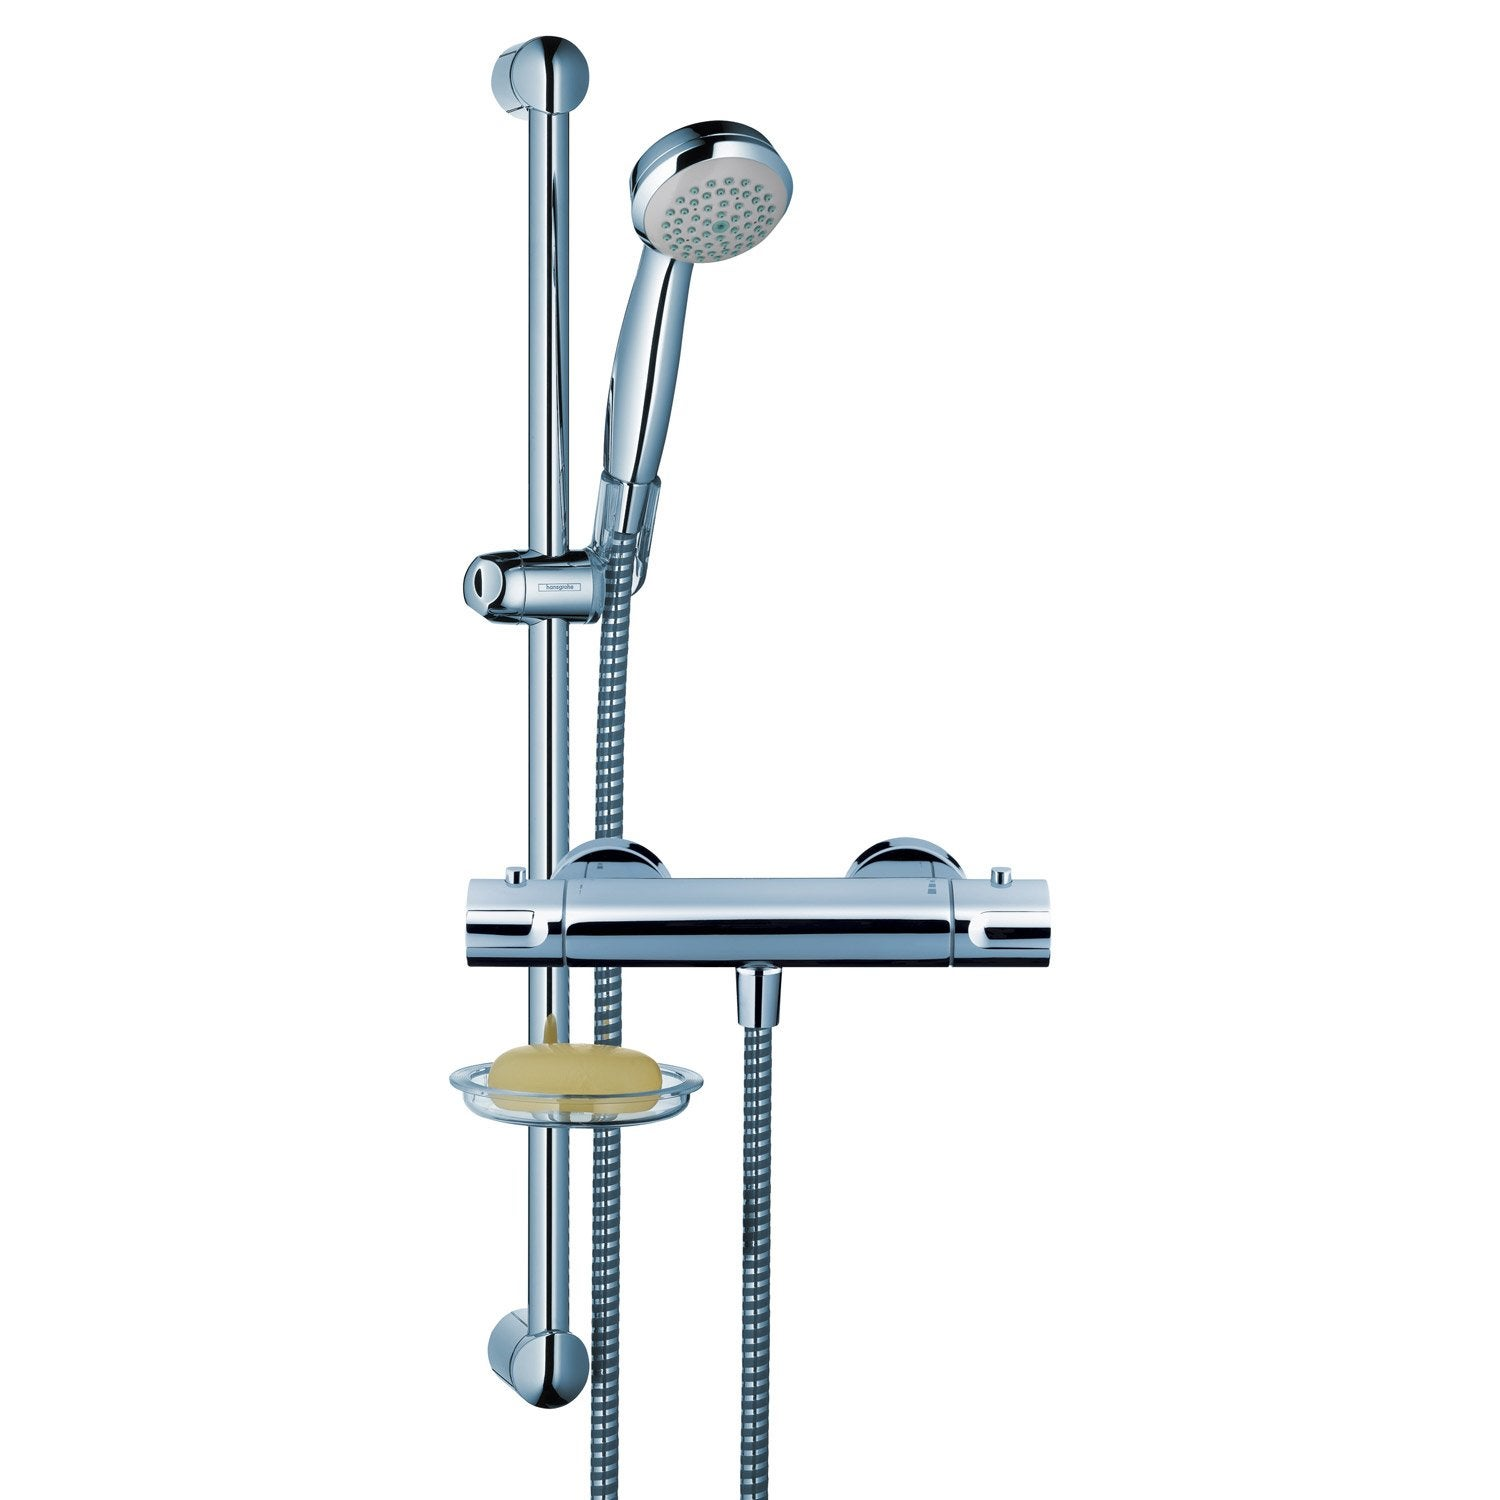 Ensemble de douche hansgrohe club eco avec thermostatique leroy merlin - Ensemble de douche leroy merlin ...